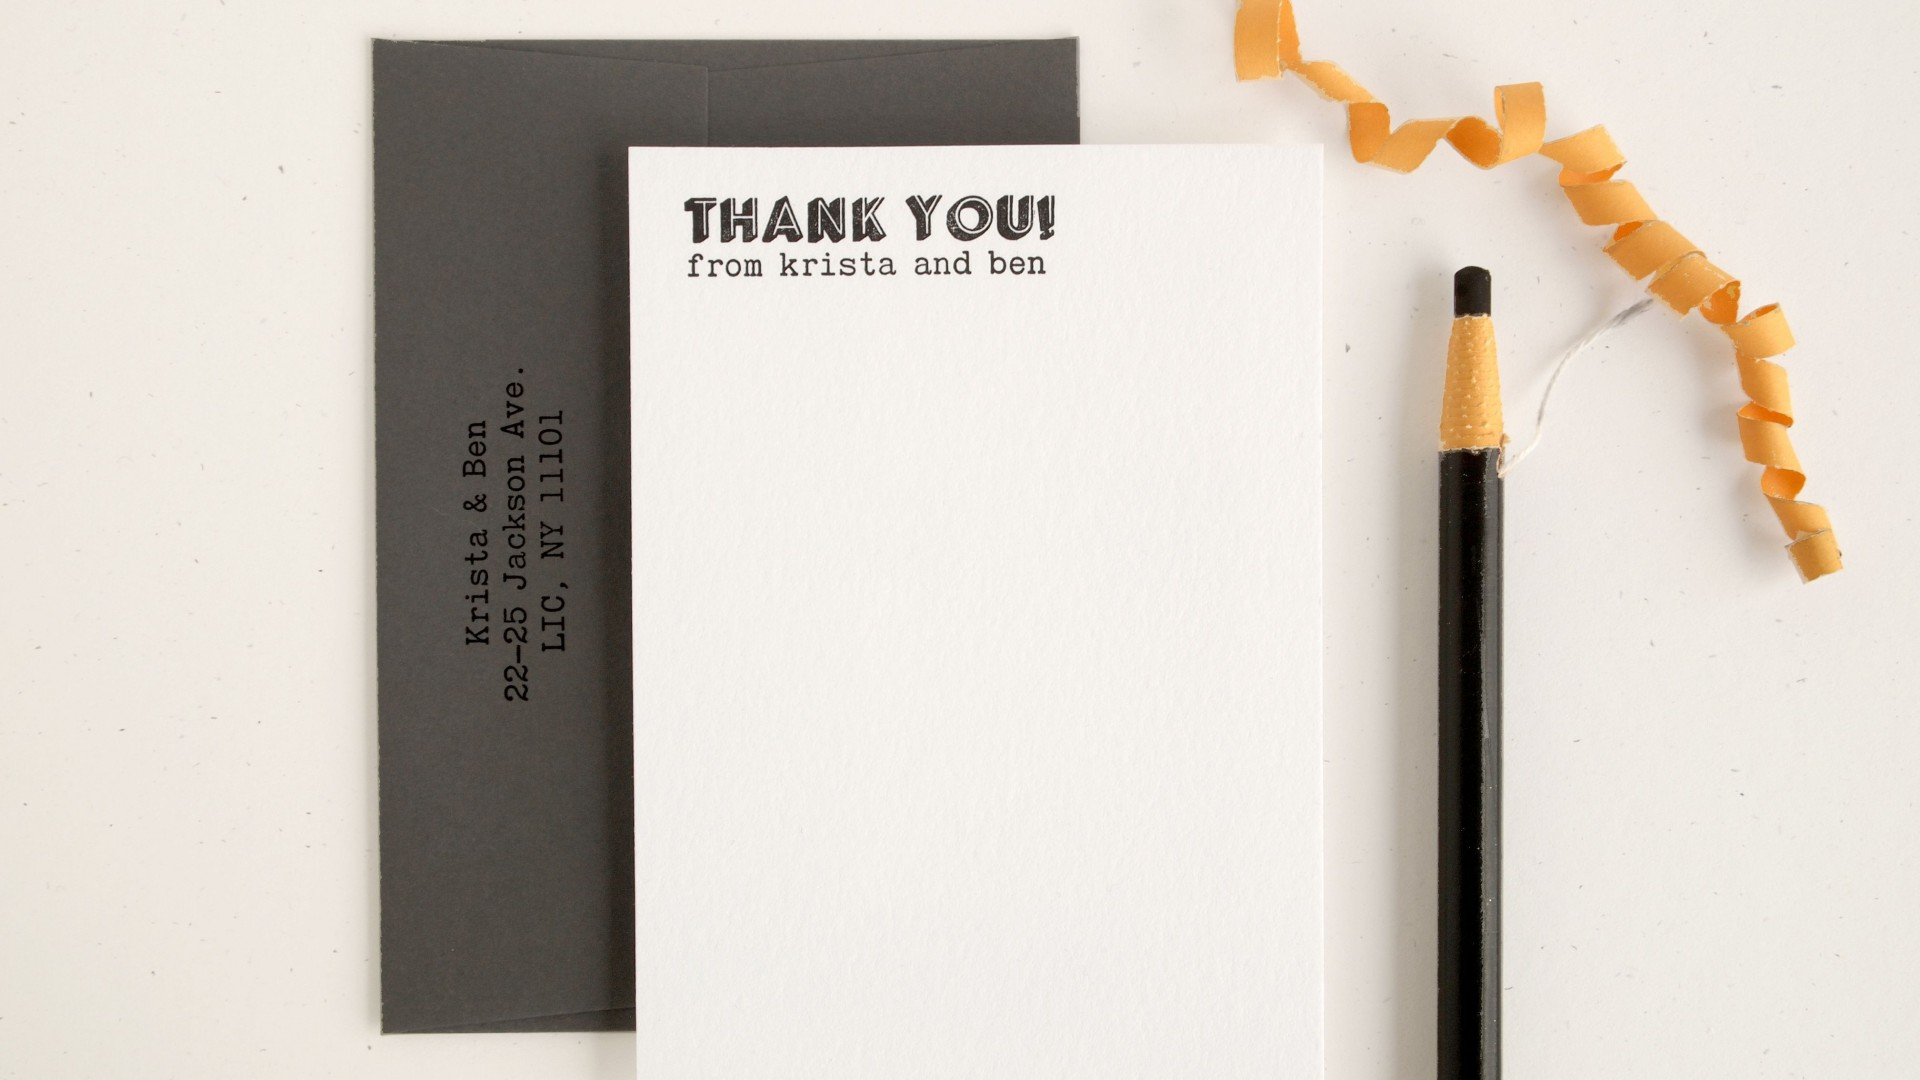 000 Stunning Thank You Note Template Wedding Money Idea  Card Example For Sample Cash Gift1920